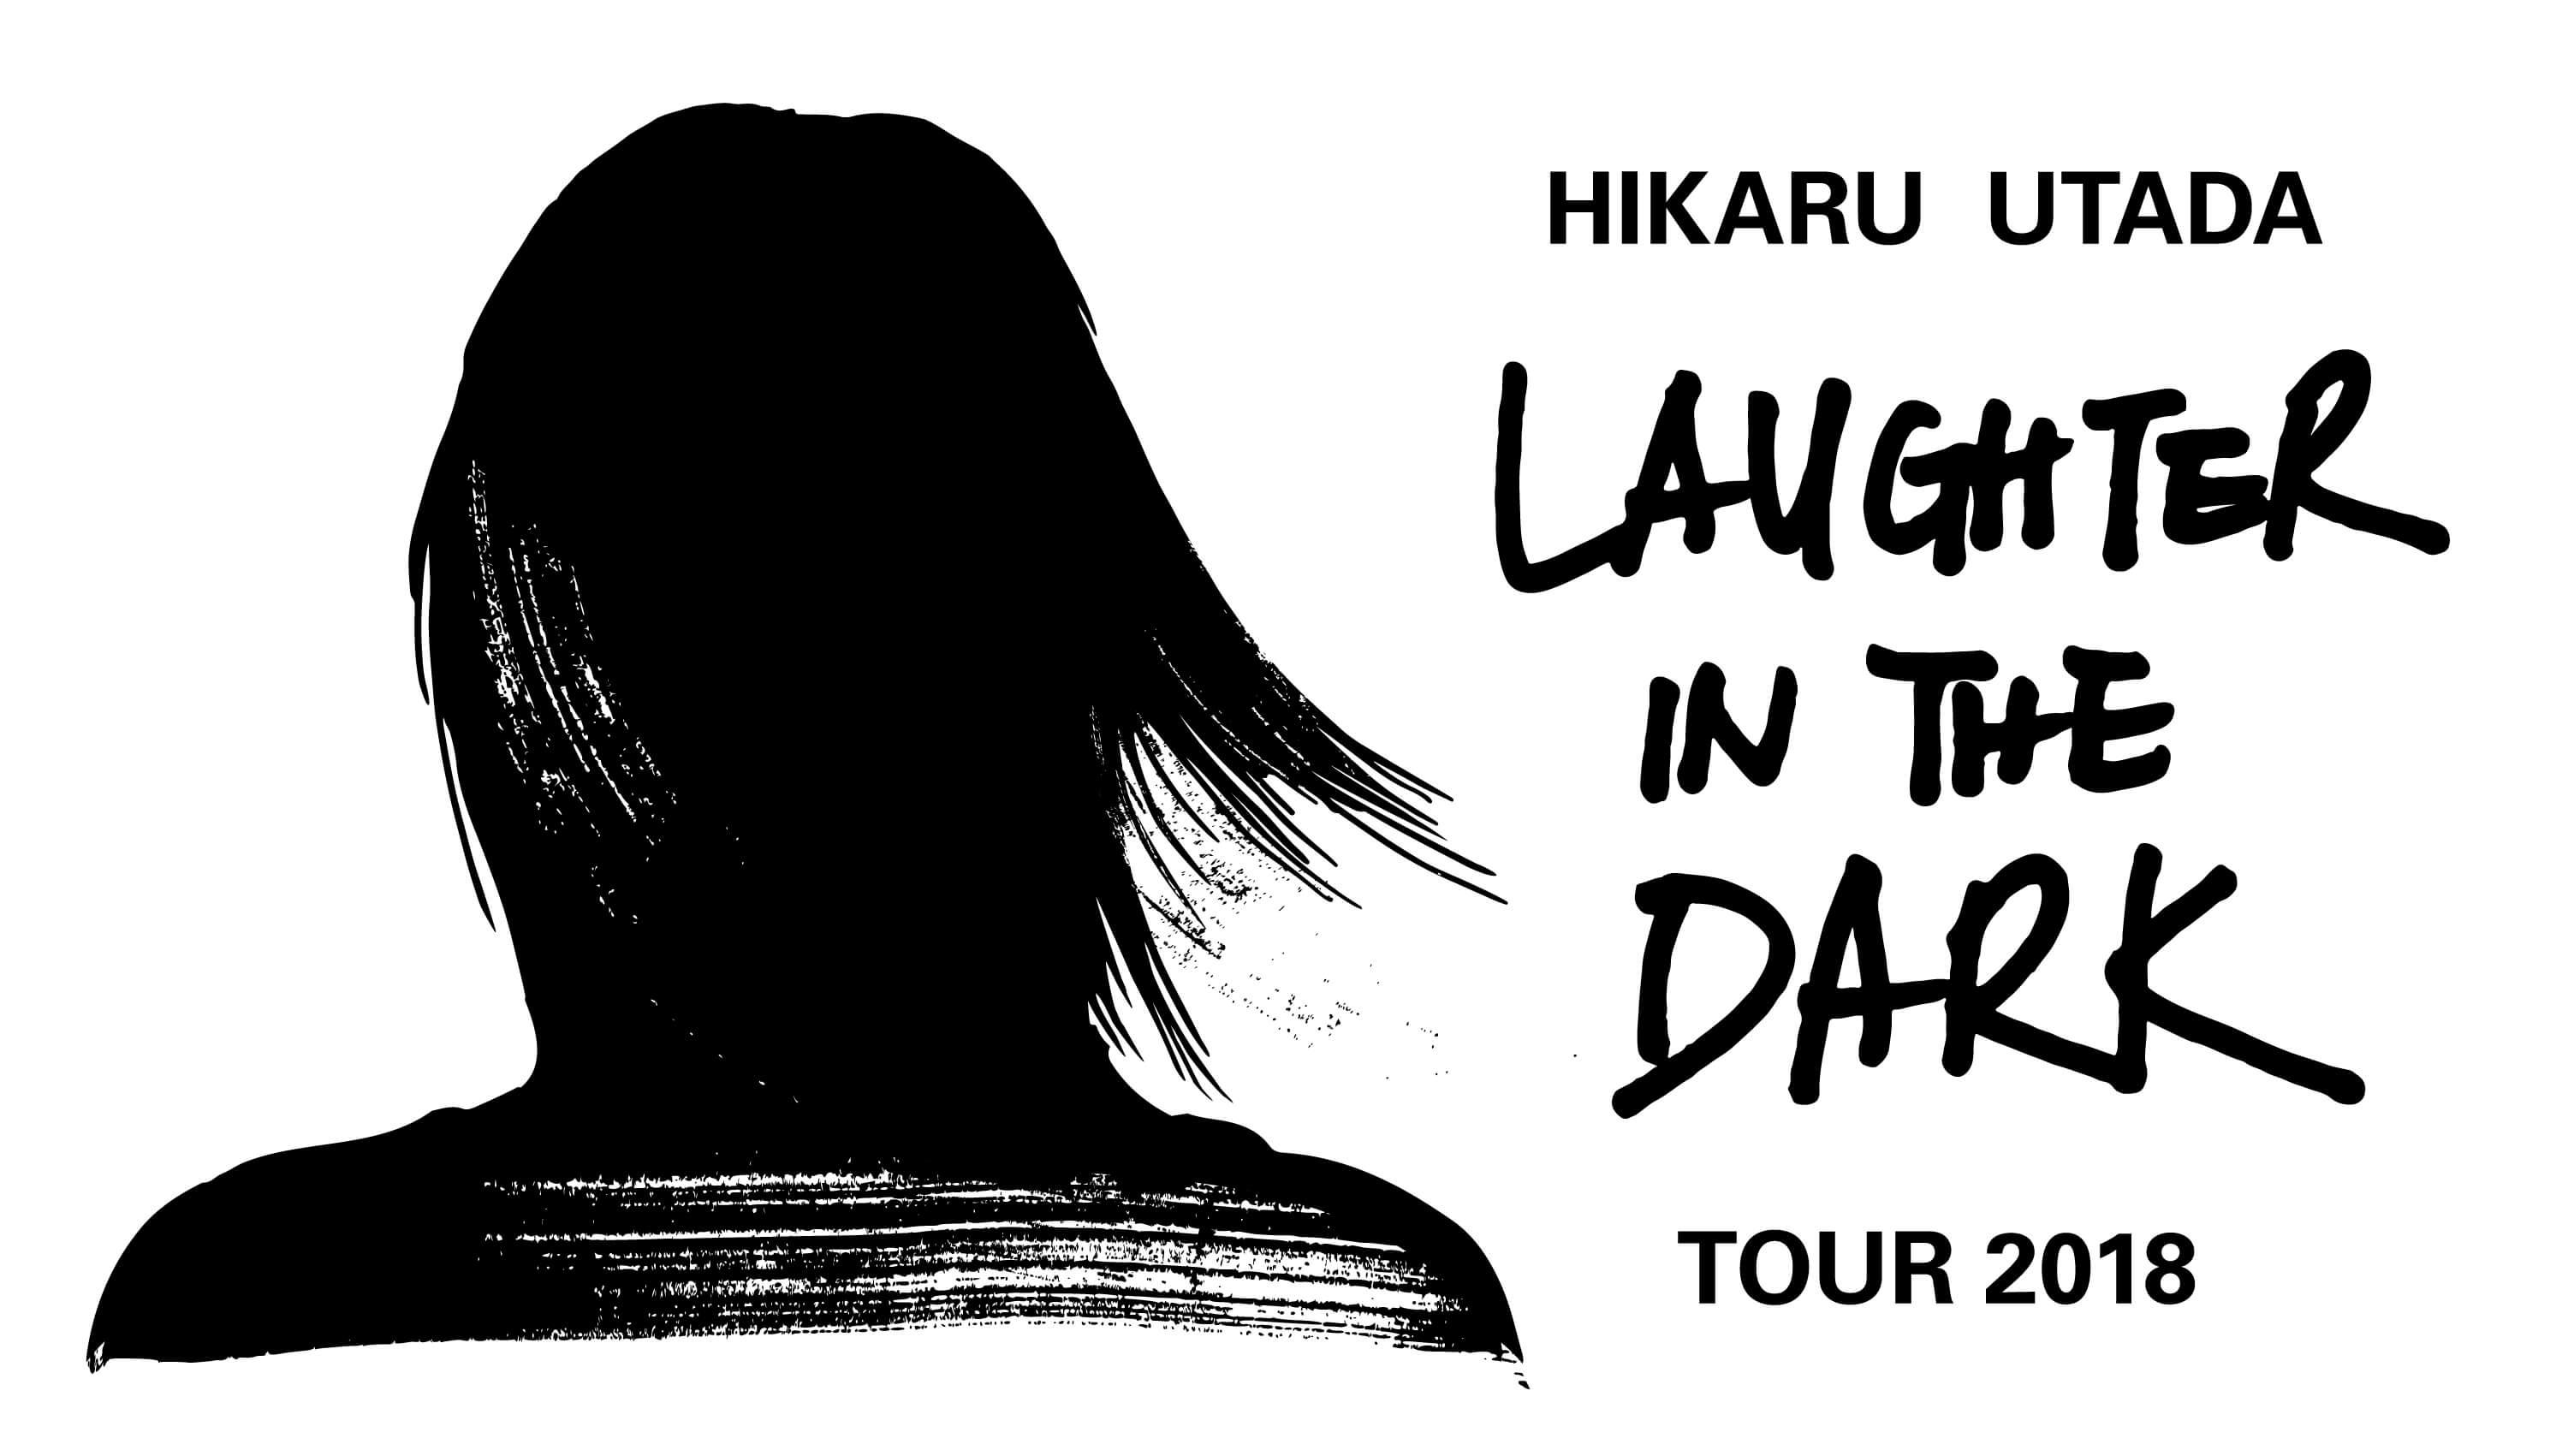 Hikaru Utada Laughter in the Dark Tour 2018